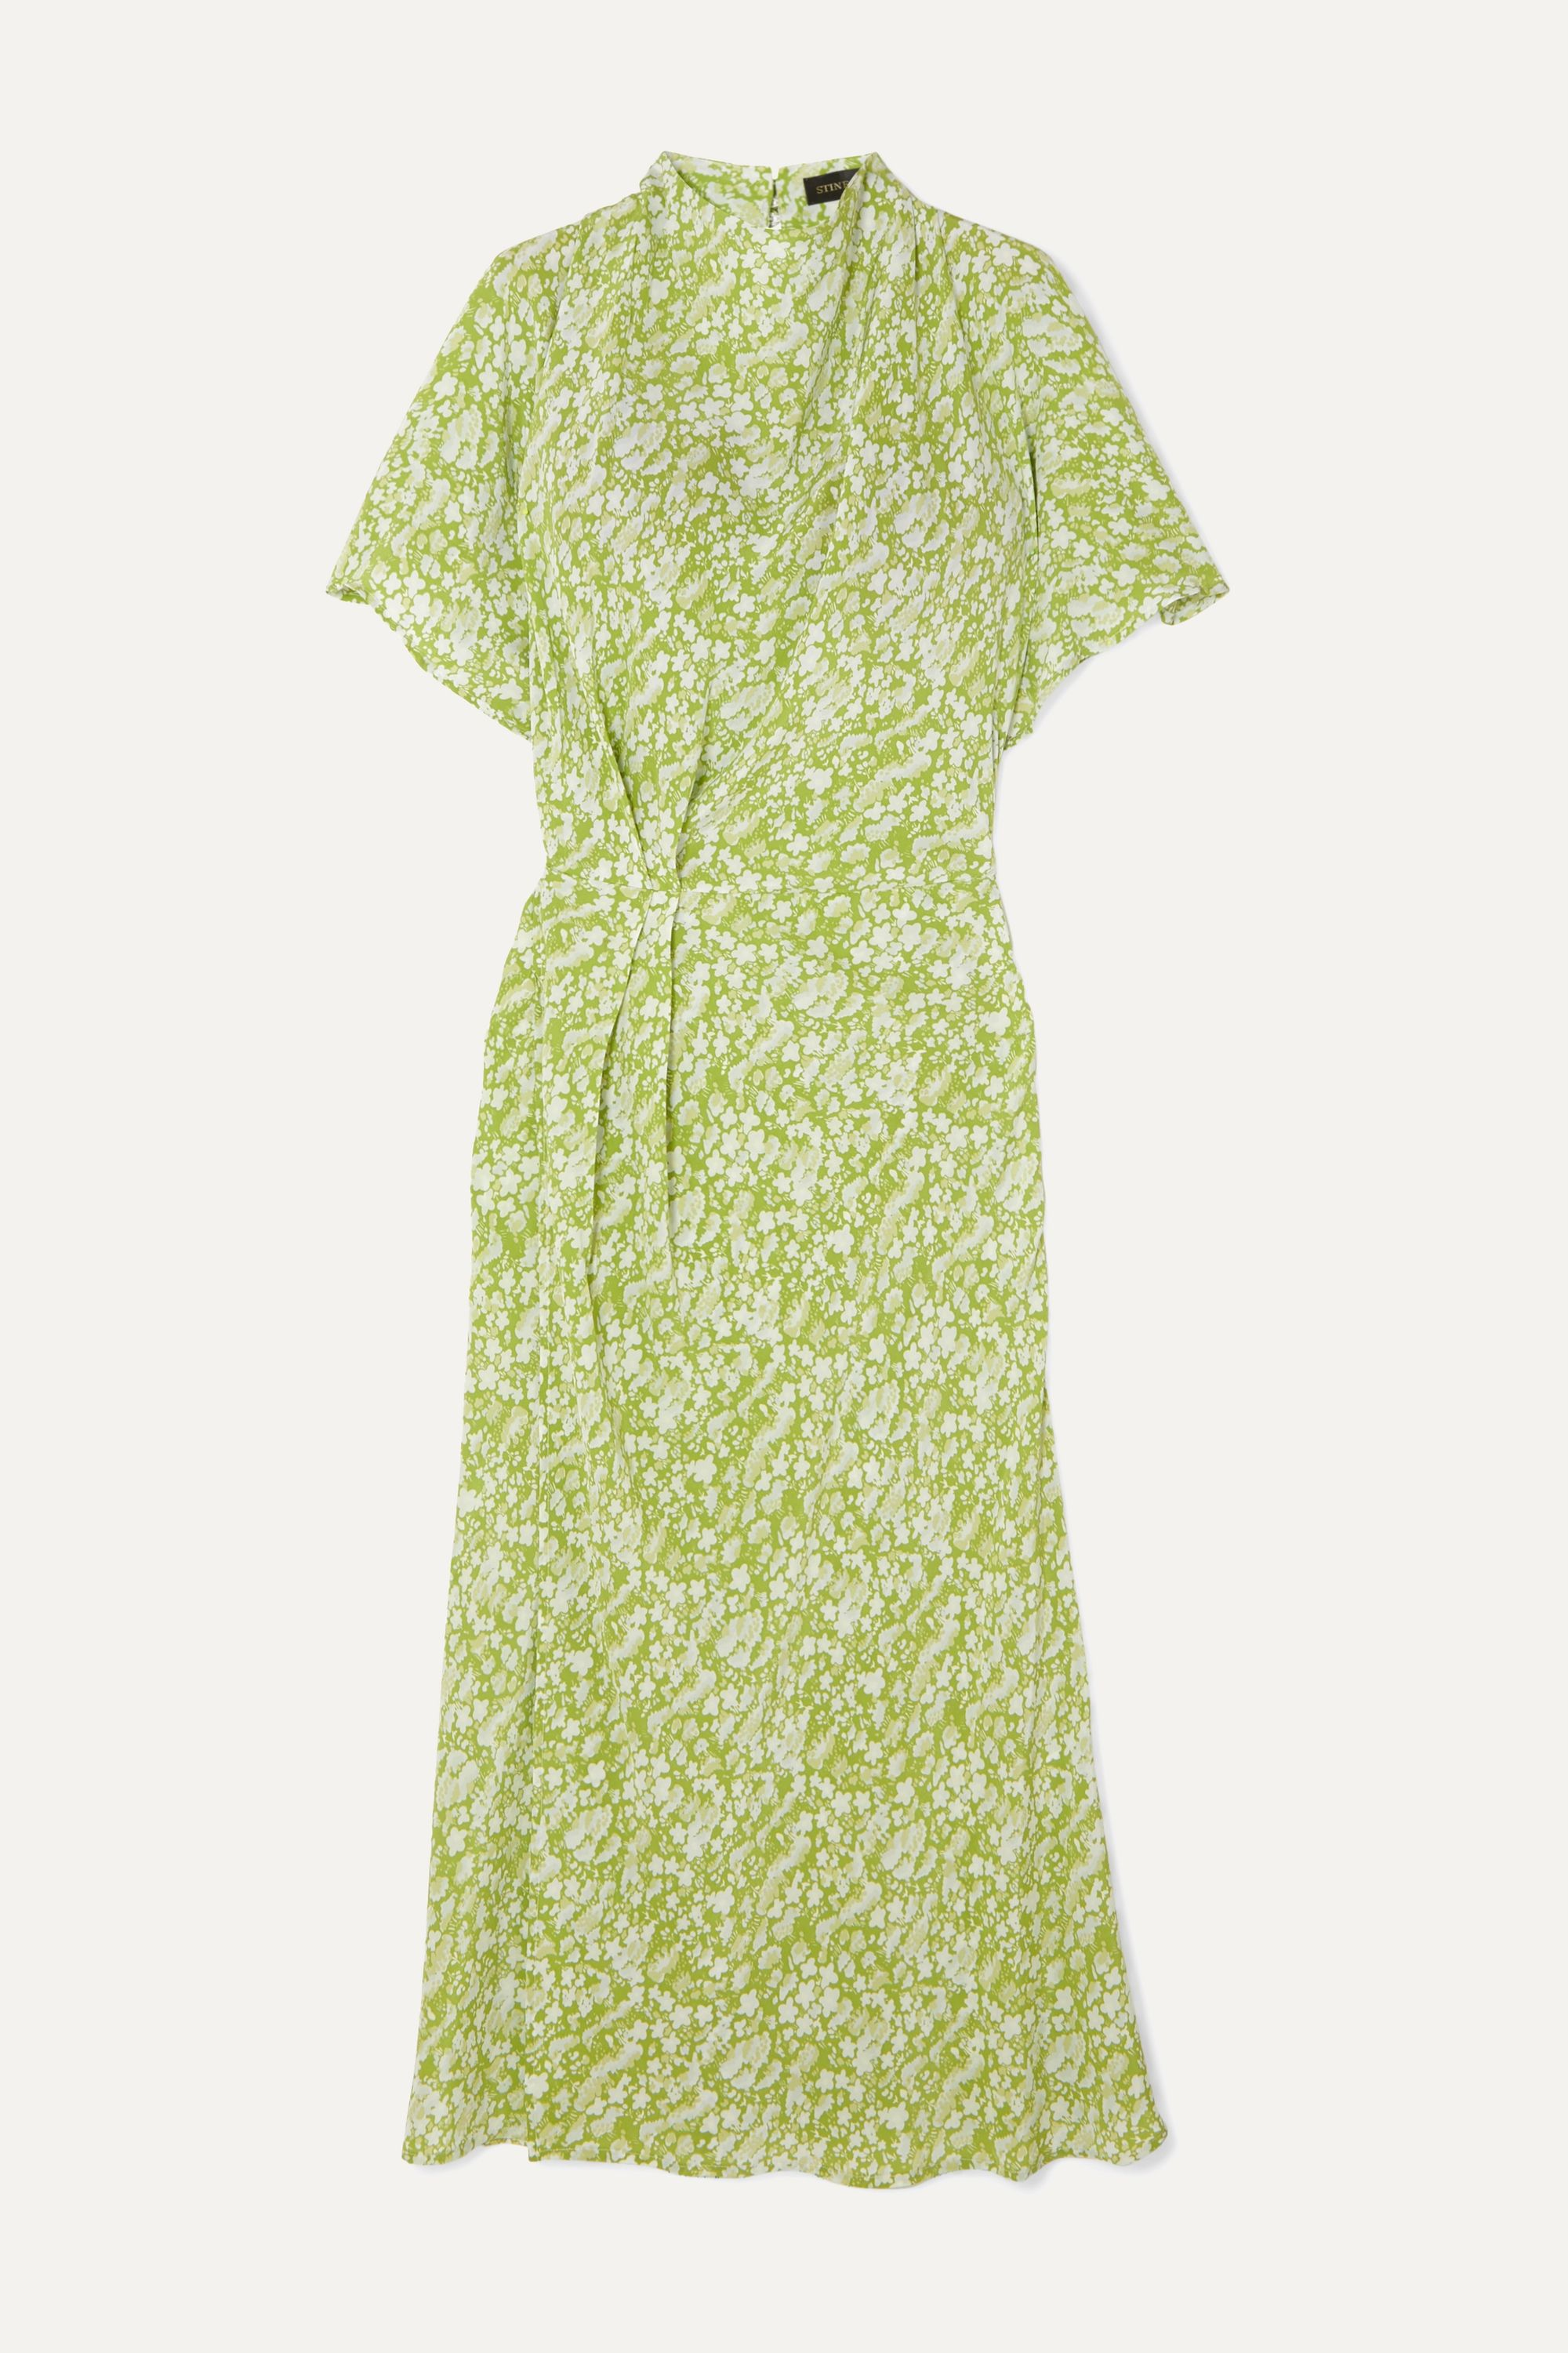 NEXT Really Pretty Lime Green Dress Size 6-9 Months NWT